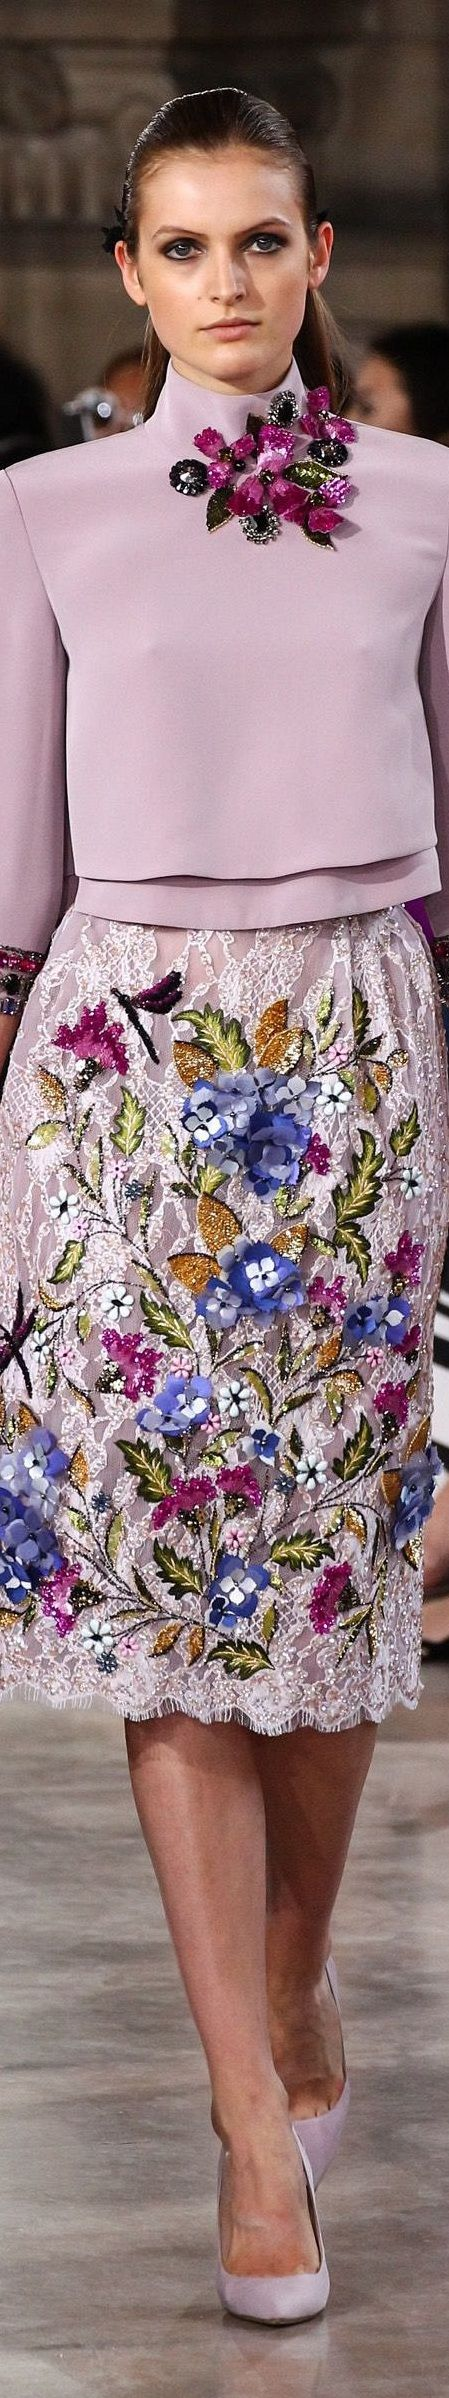 Georges Hobeika fall 2016 couture